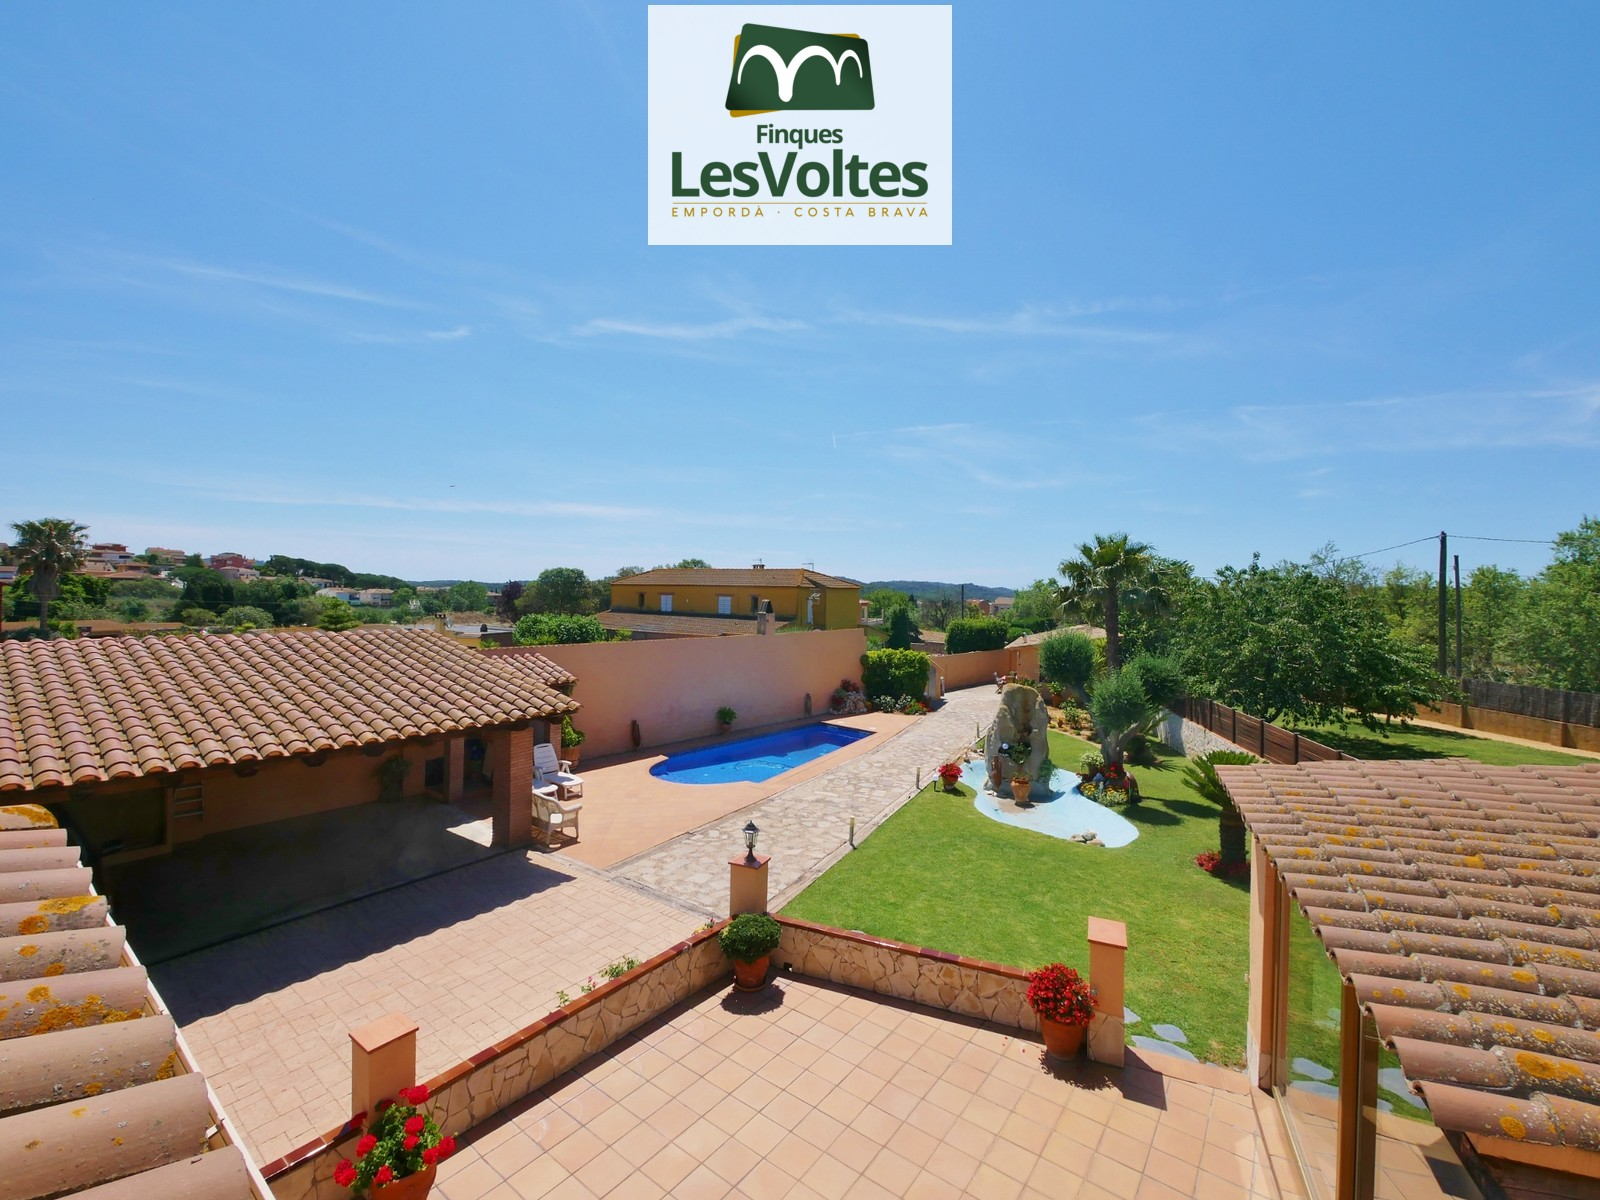 HOUSE WITH GARDEN AND POOL FOR SALE IN MONT-RAS. LOCATED IN A VERY QUIET AND EASY ACCESS RESIDENTIAL AREA.